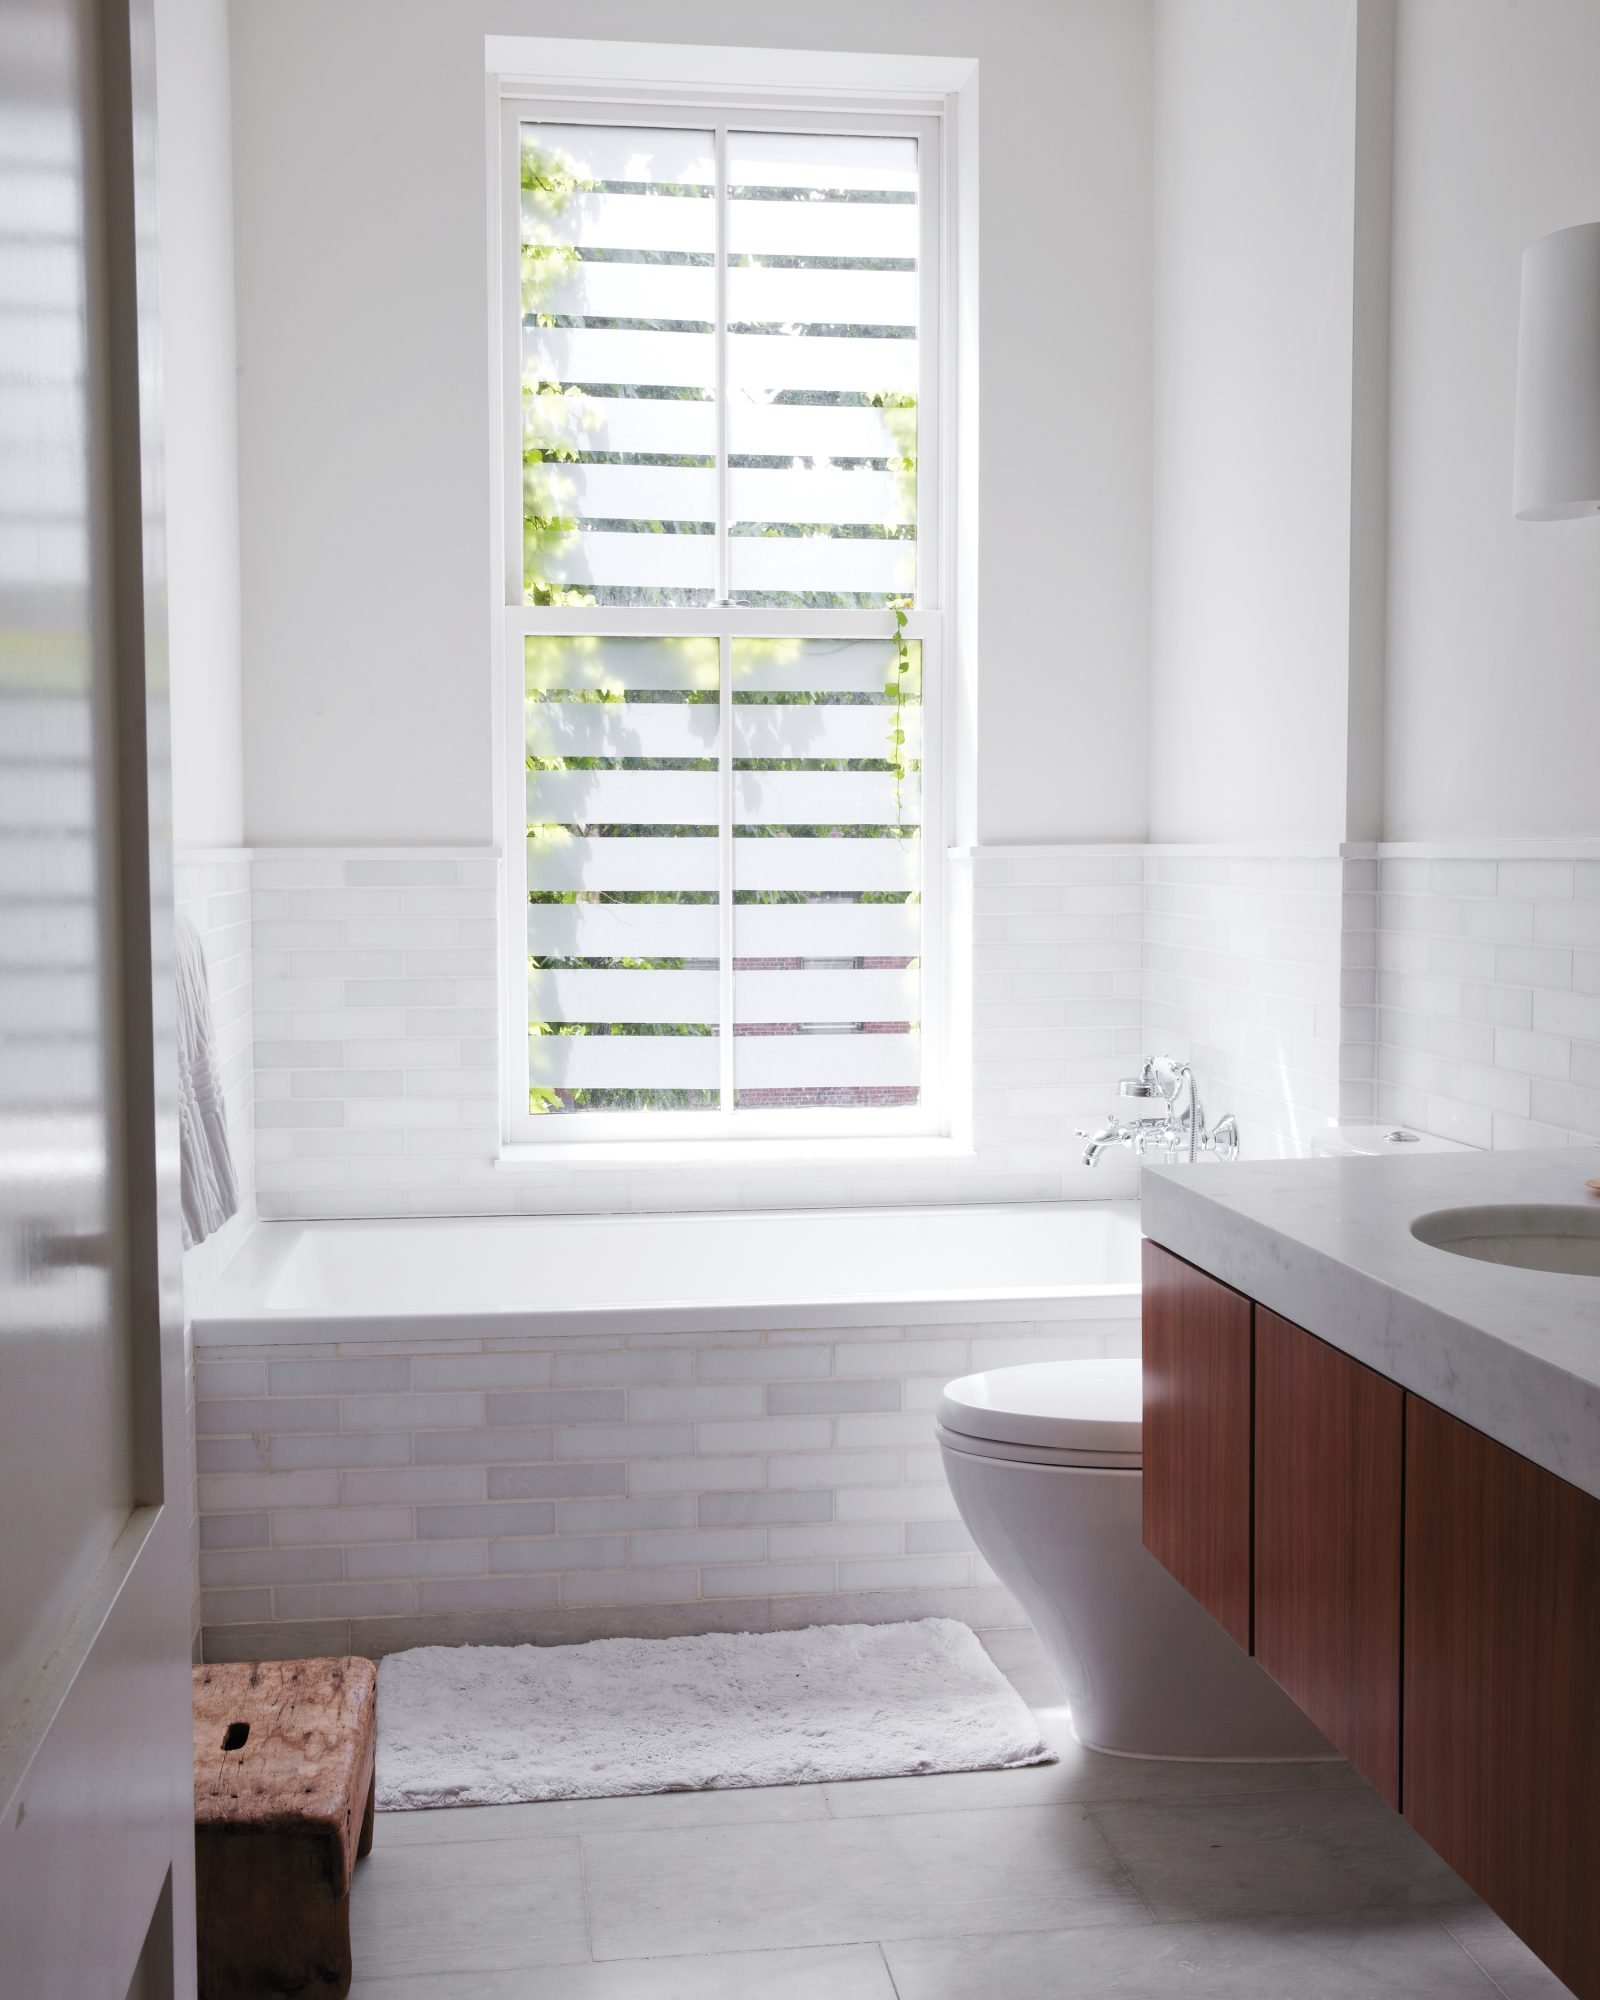 bathroom-windows-019-md110236.jpg